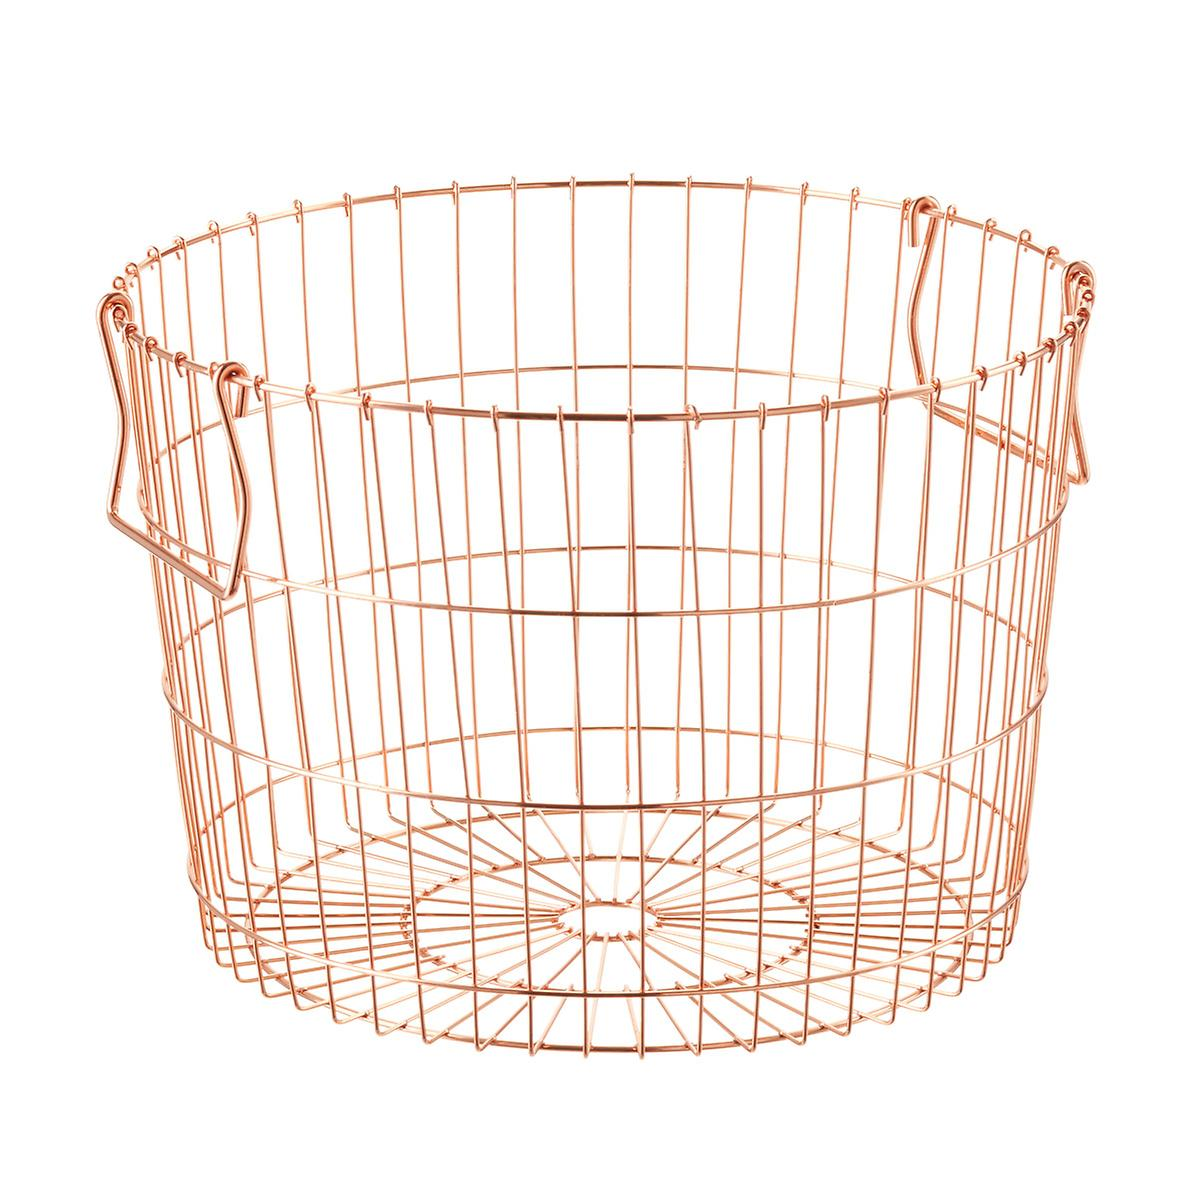 DII Farmhouse Vintage Food Safe Metal Chicken Wire Storage Baskets with Removable Fabric Liner for Home Décor or Kitchen Use, Set of 2, Natural.